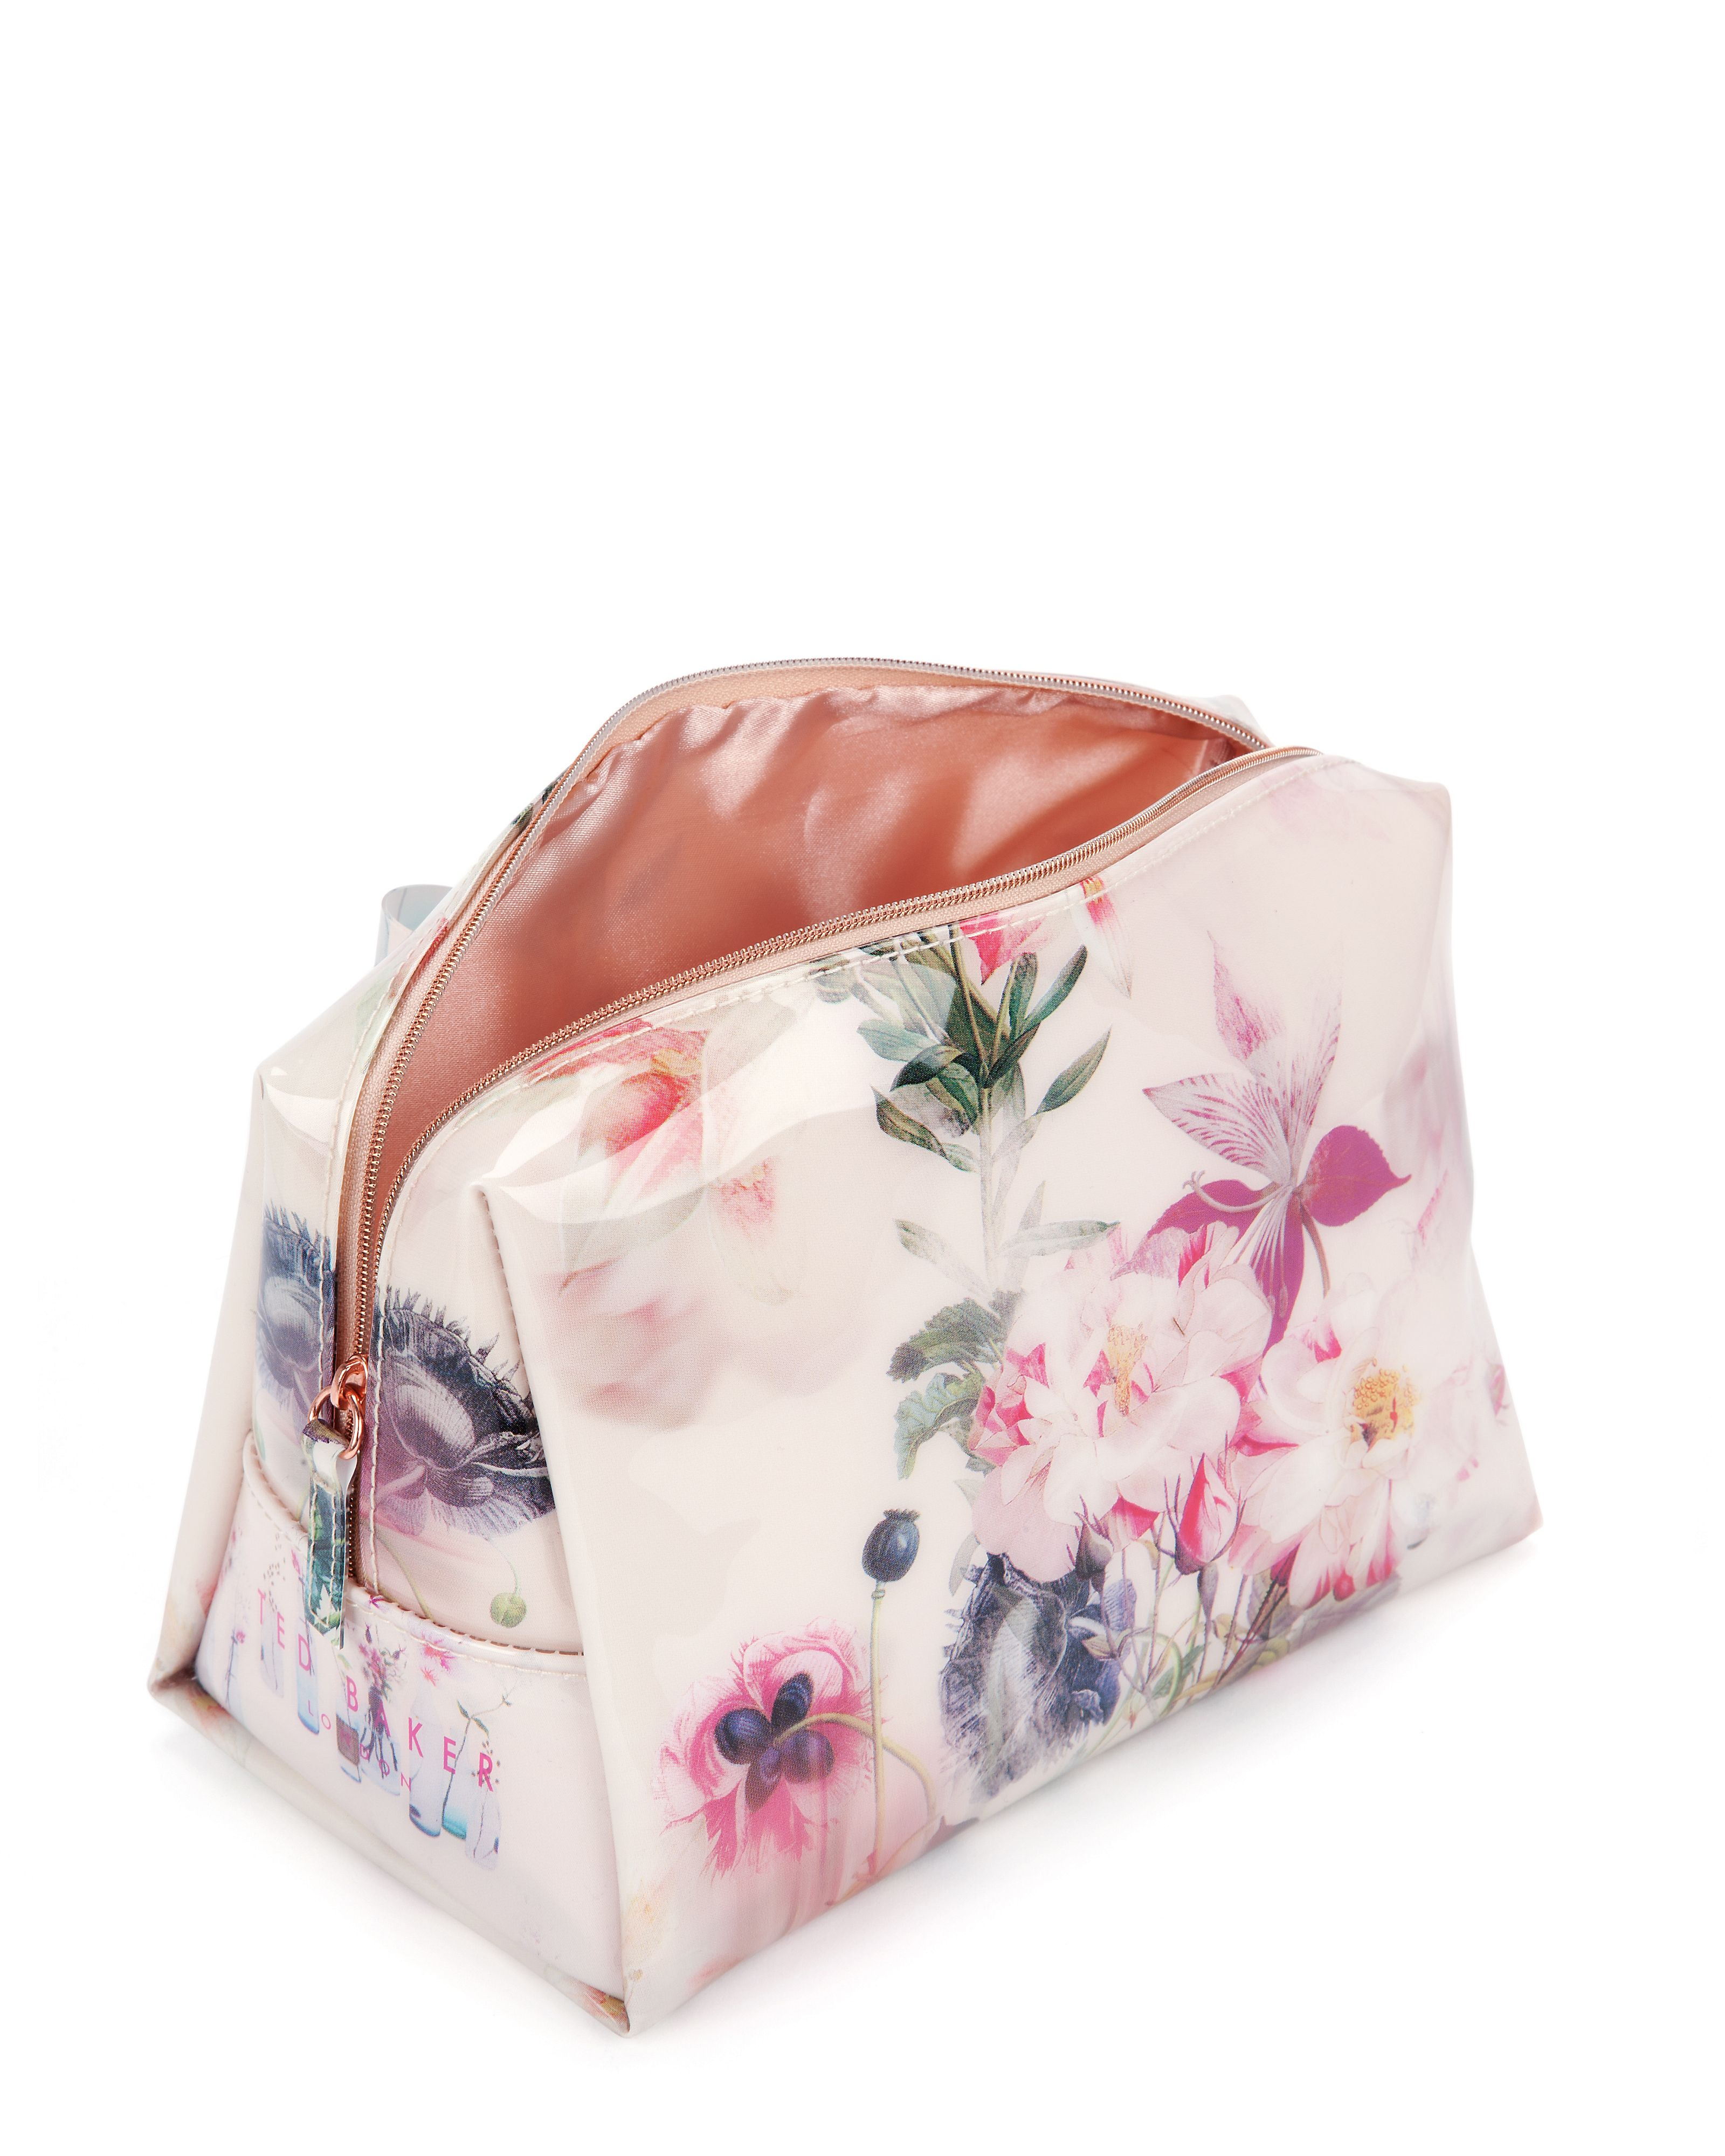 Ebyo opulent bow large wash bag